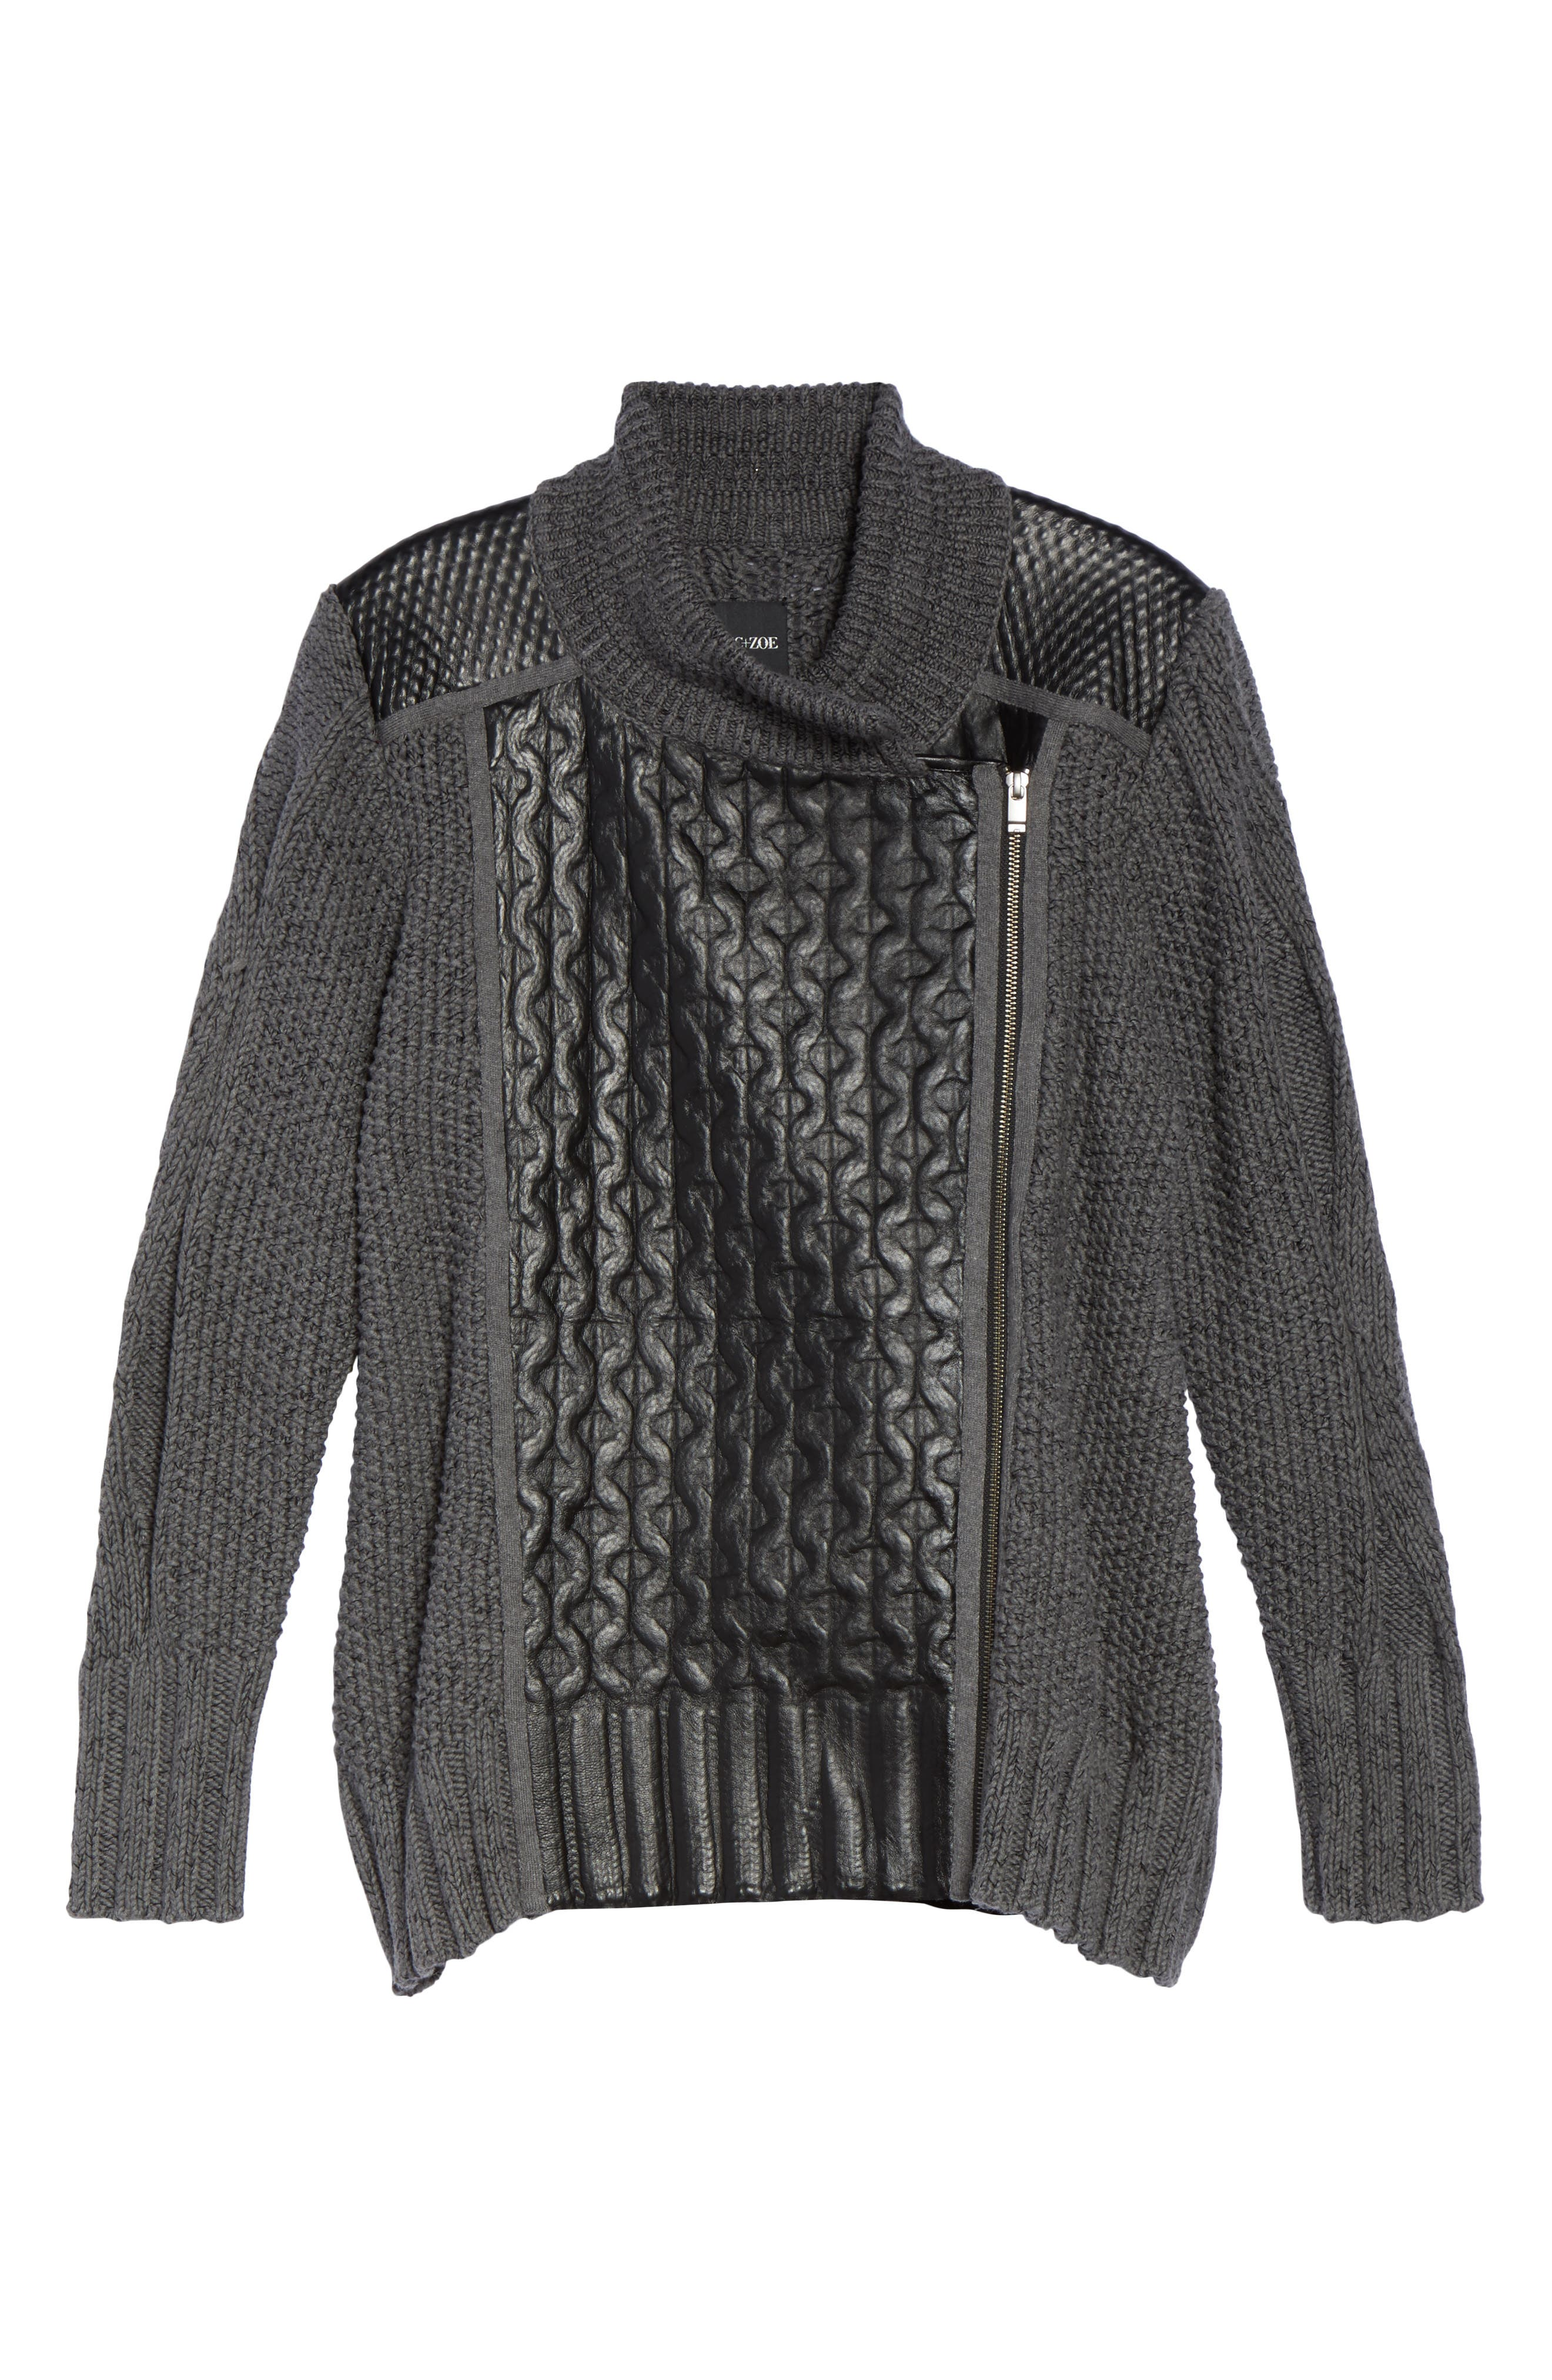 Cable Knit & Leather Jacket,                             Alternate thumbnail 6, color,                             020